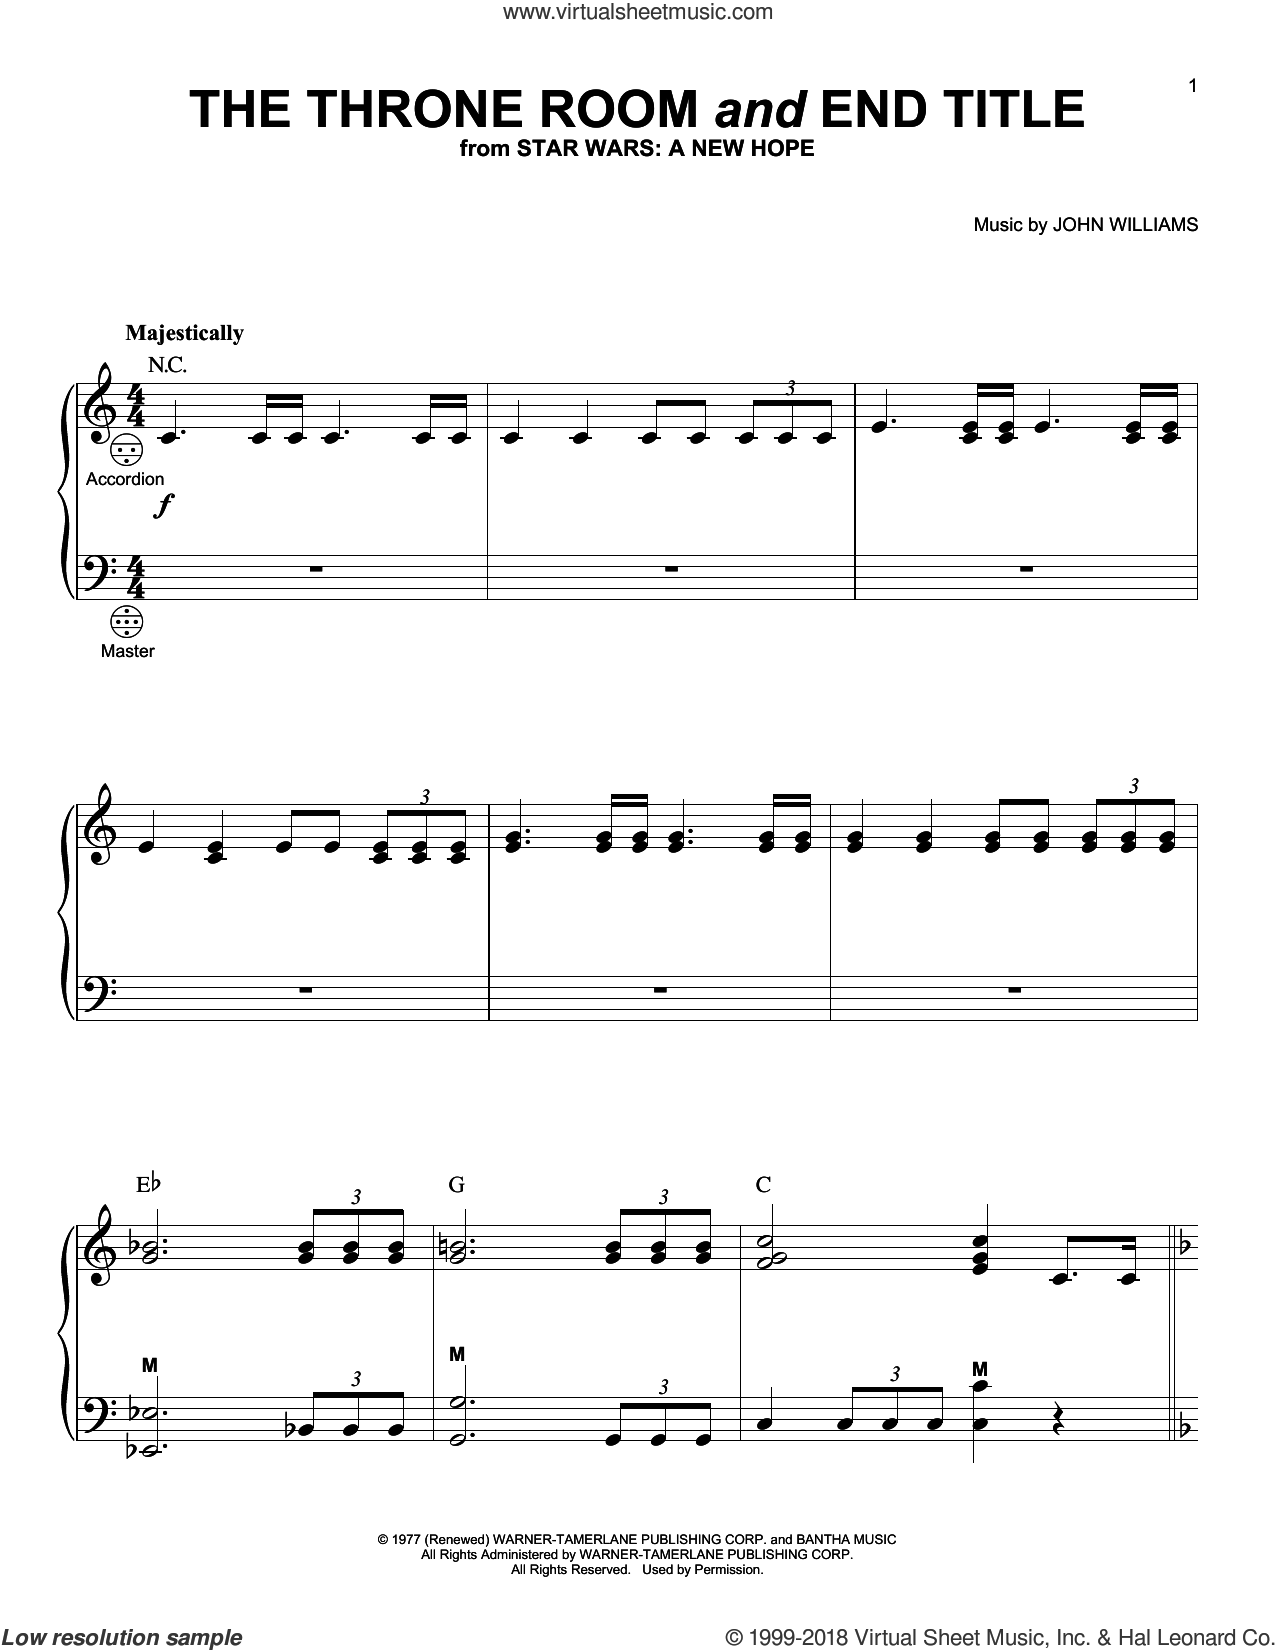 The Throne Room (And End Title) sheet music for accordion by John Williams, intermediate skill level